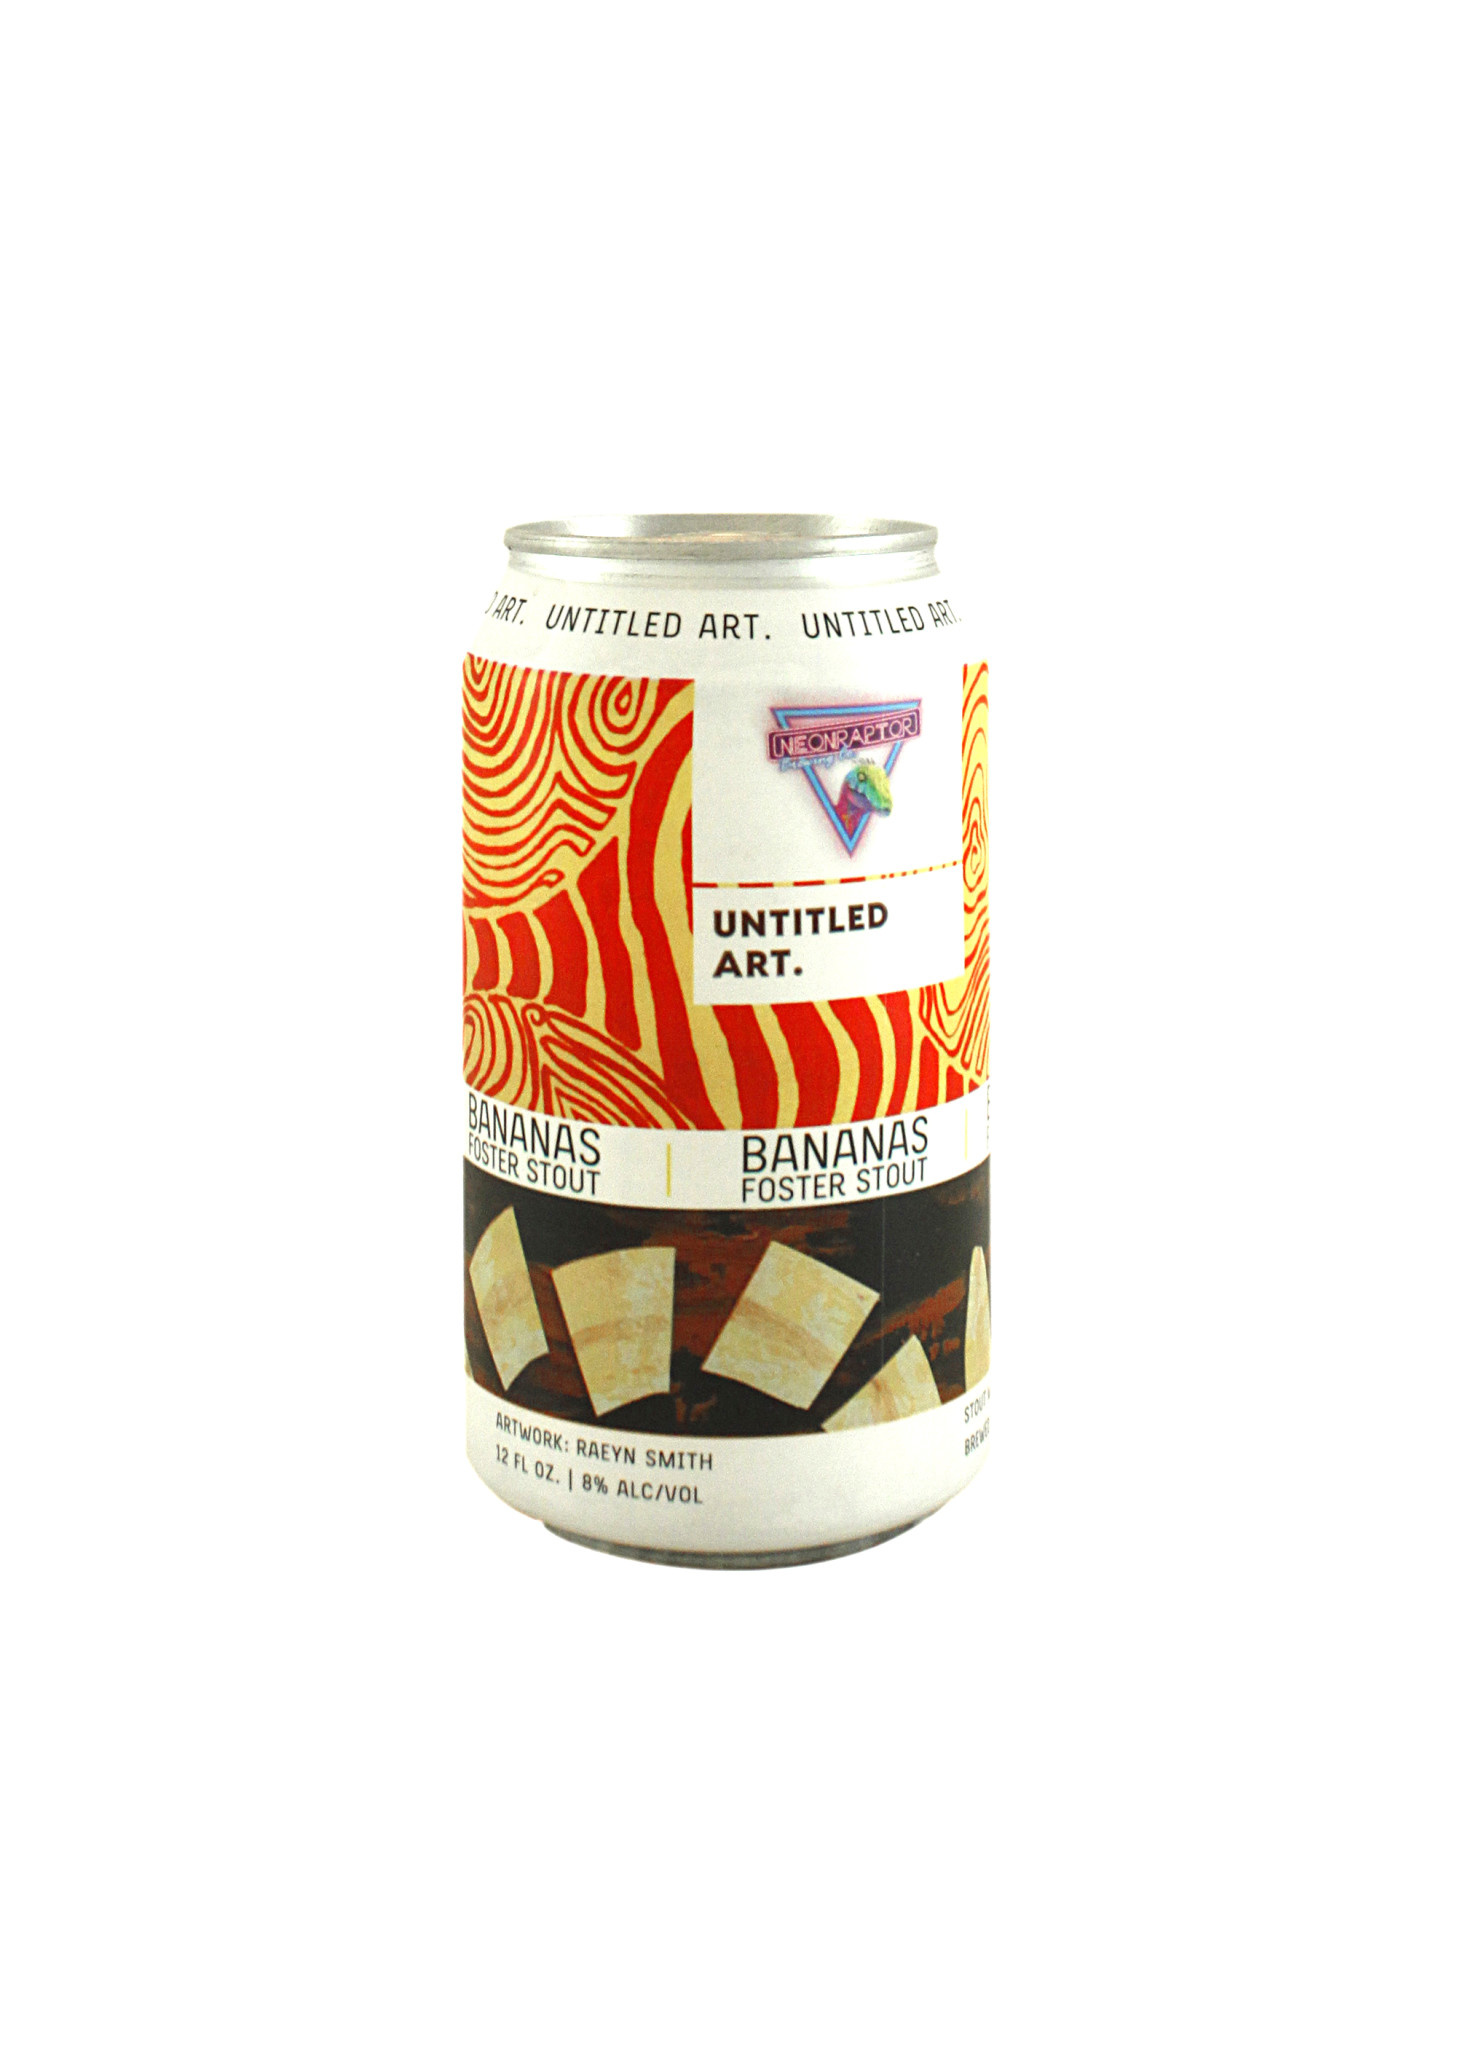 "Untitled Art. ""Bananas Foster"" Stout 12oz. can - Wisconsin"